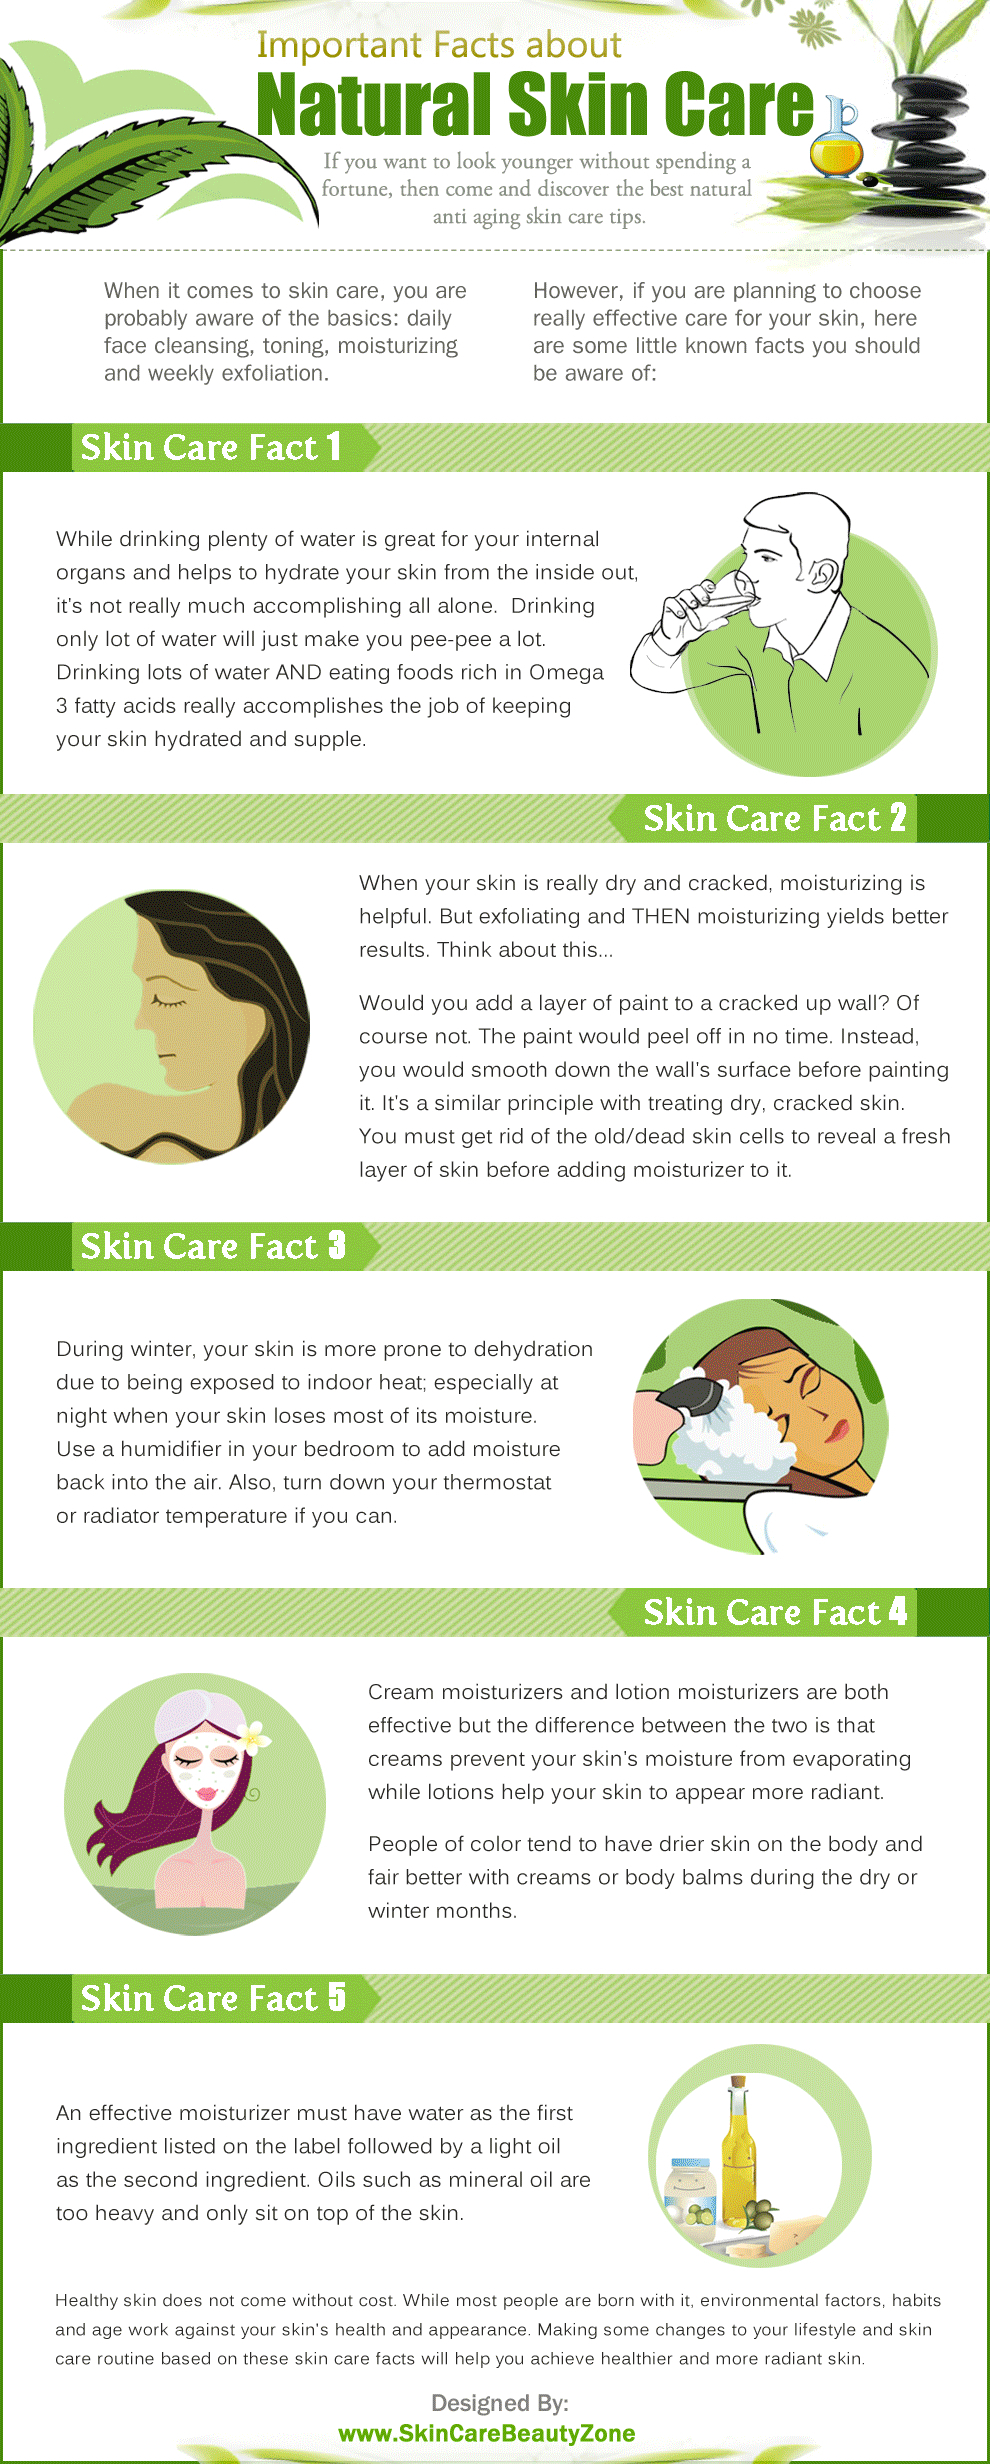 Important Skin Care Facts